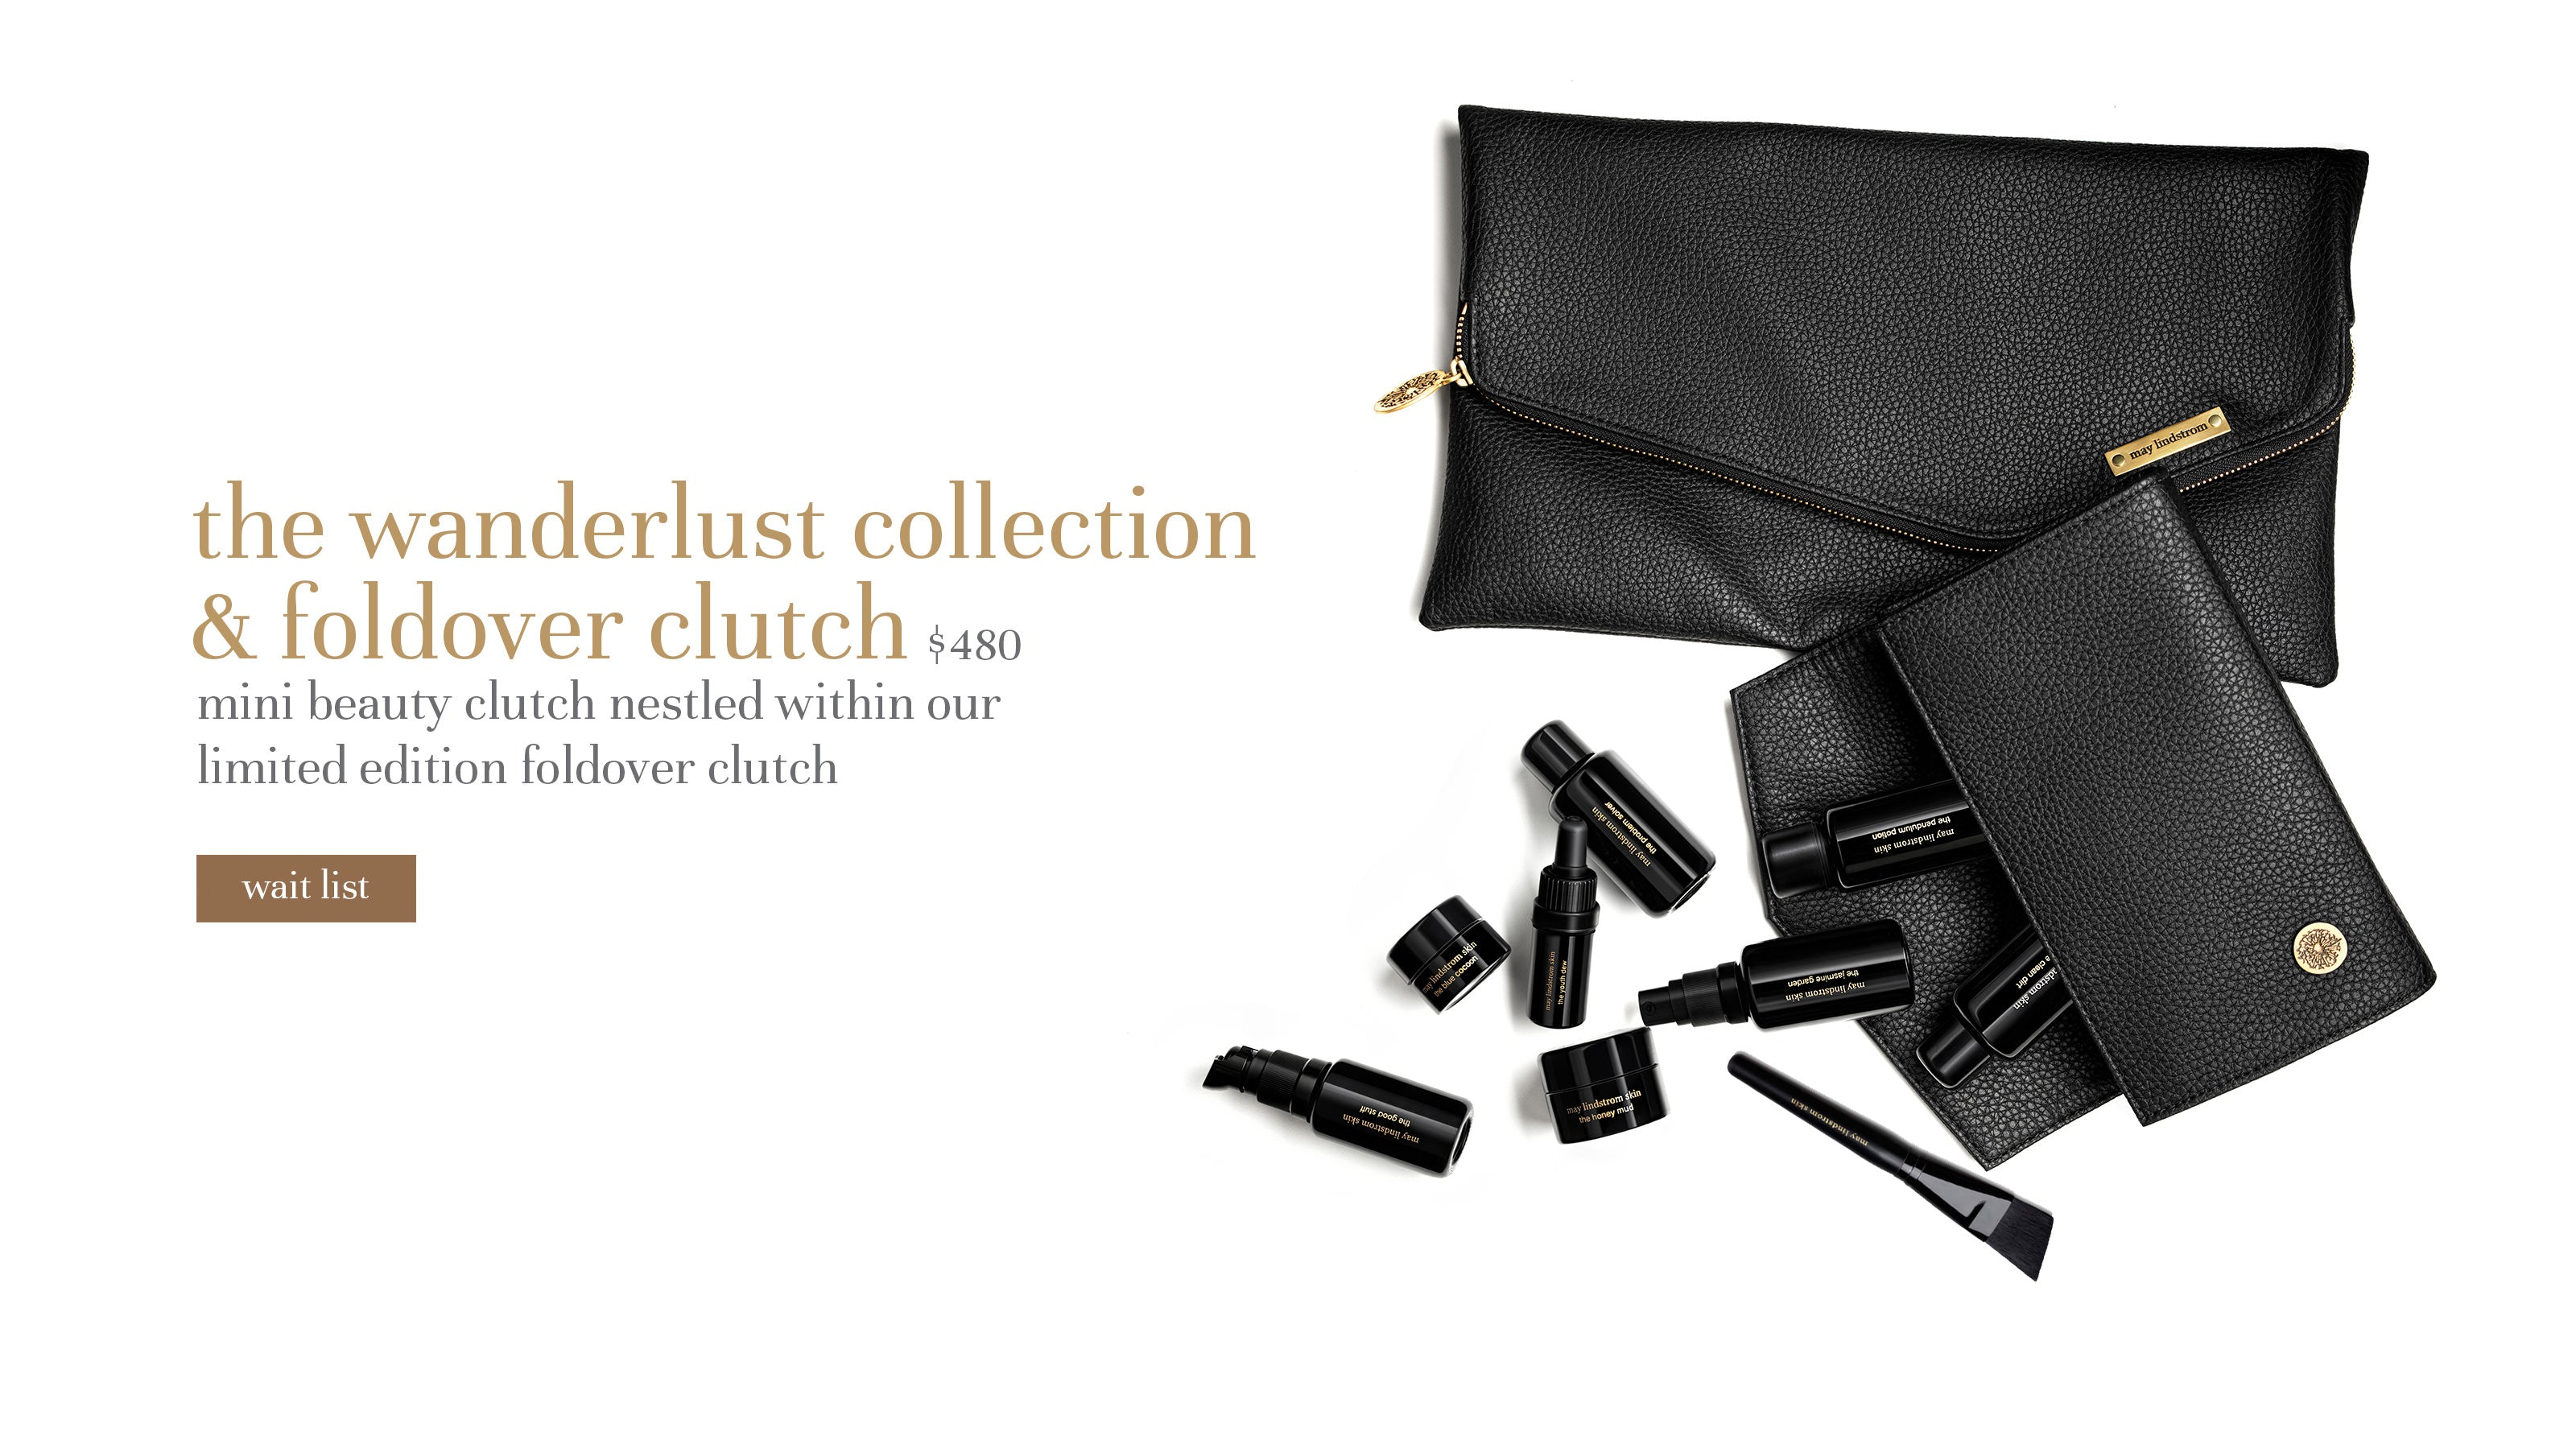 the wanderlust collection & foldover clutch $480 mini beauty clutch nestled within our limited edition foldover clutch